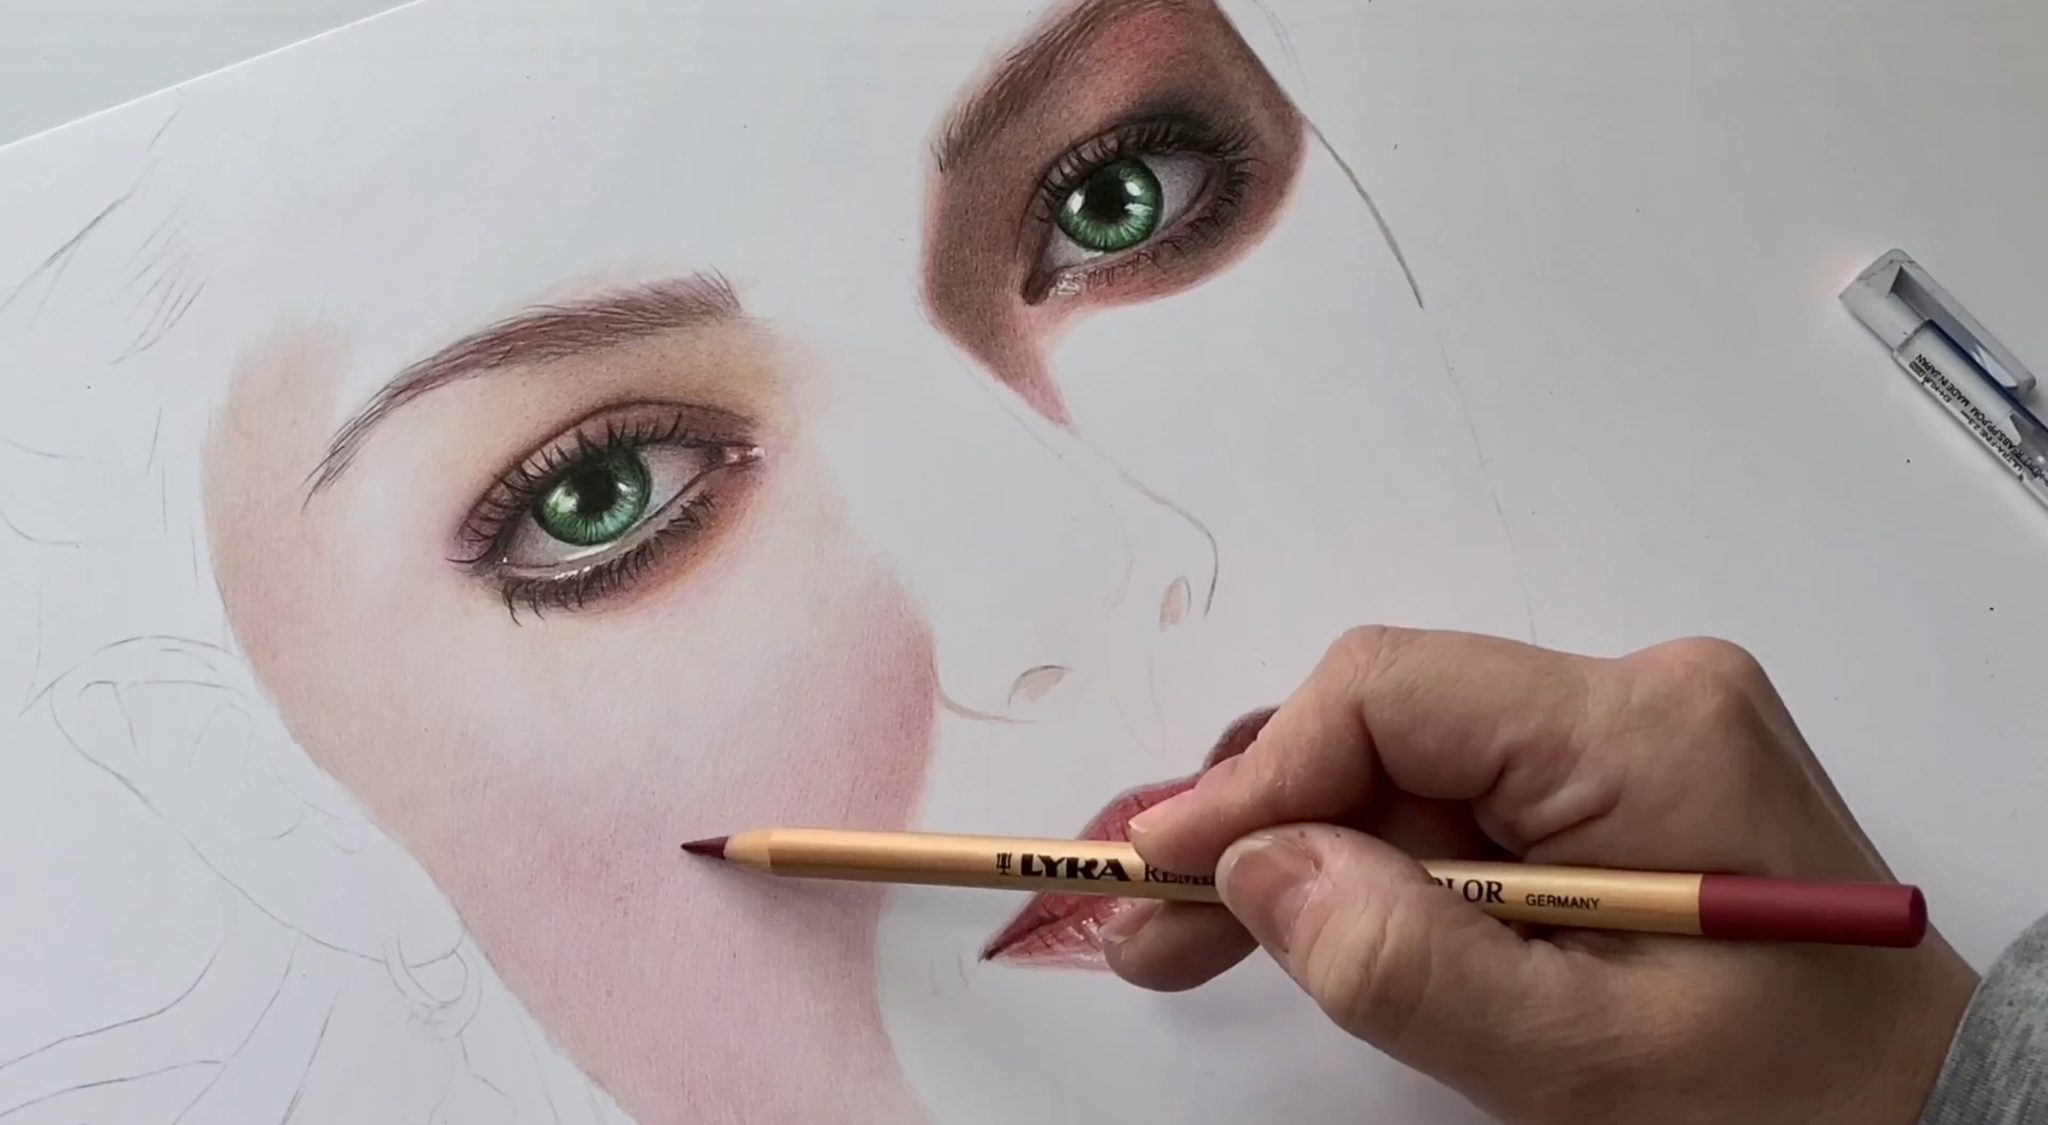 tutorial drawing skin tones with colored pencils ioanna ladopoulou art design